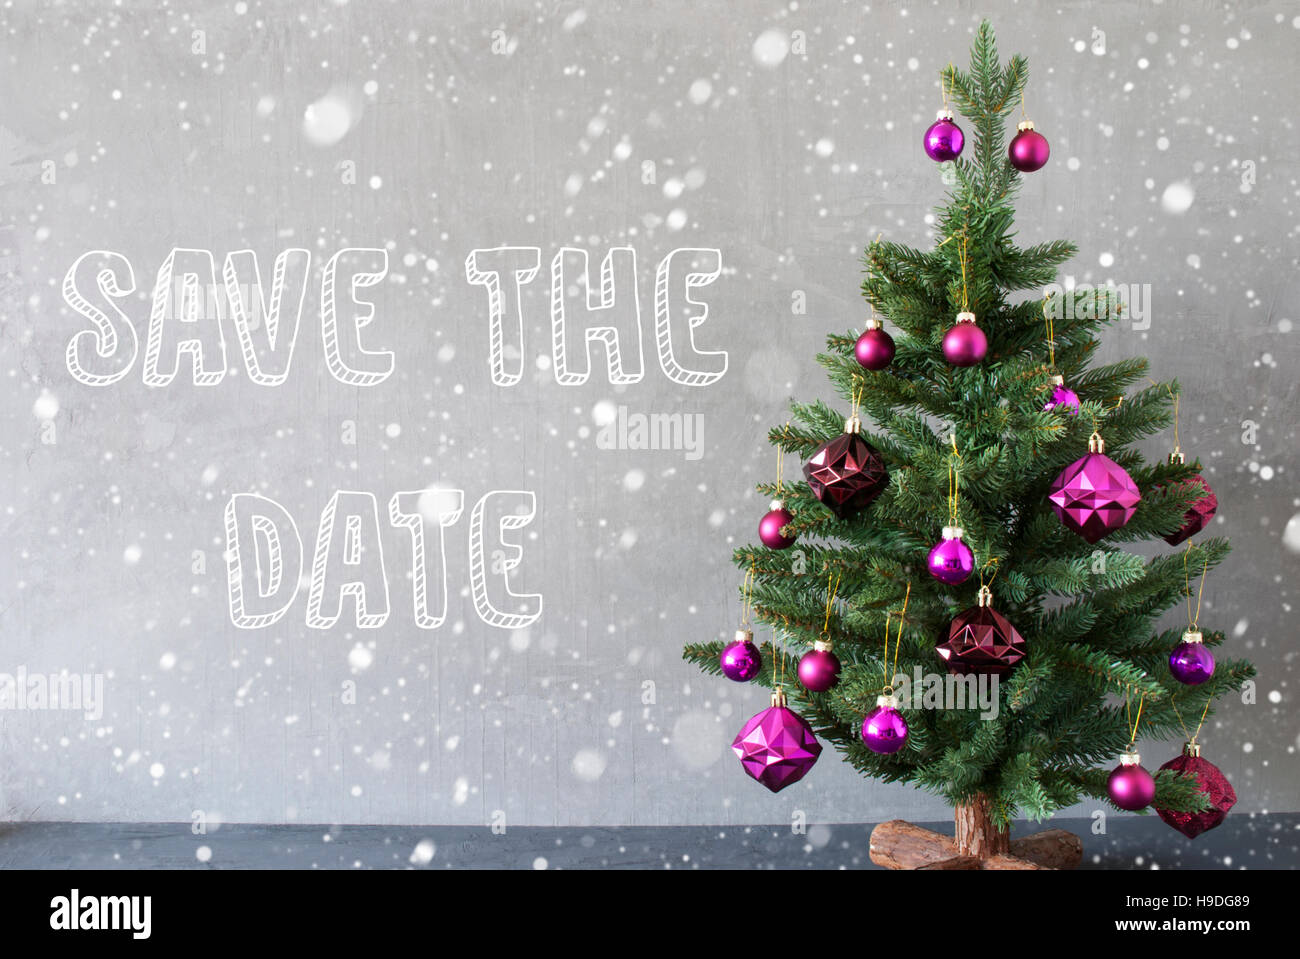 Christmas Tree Snowflakes Cement Wall English Text Save The Date